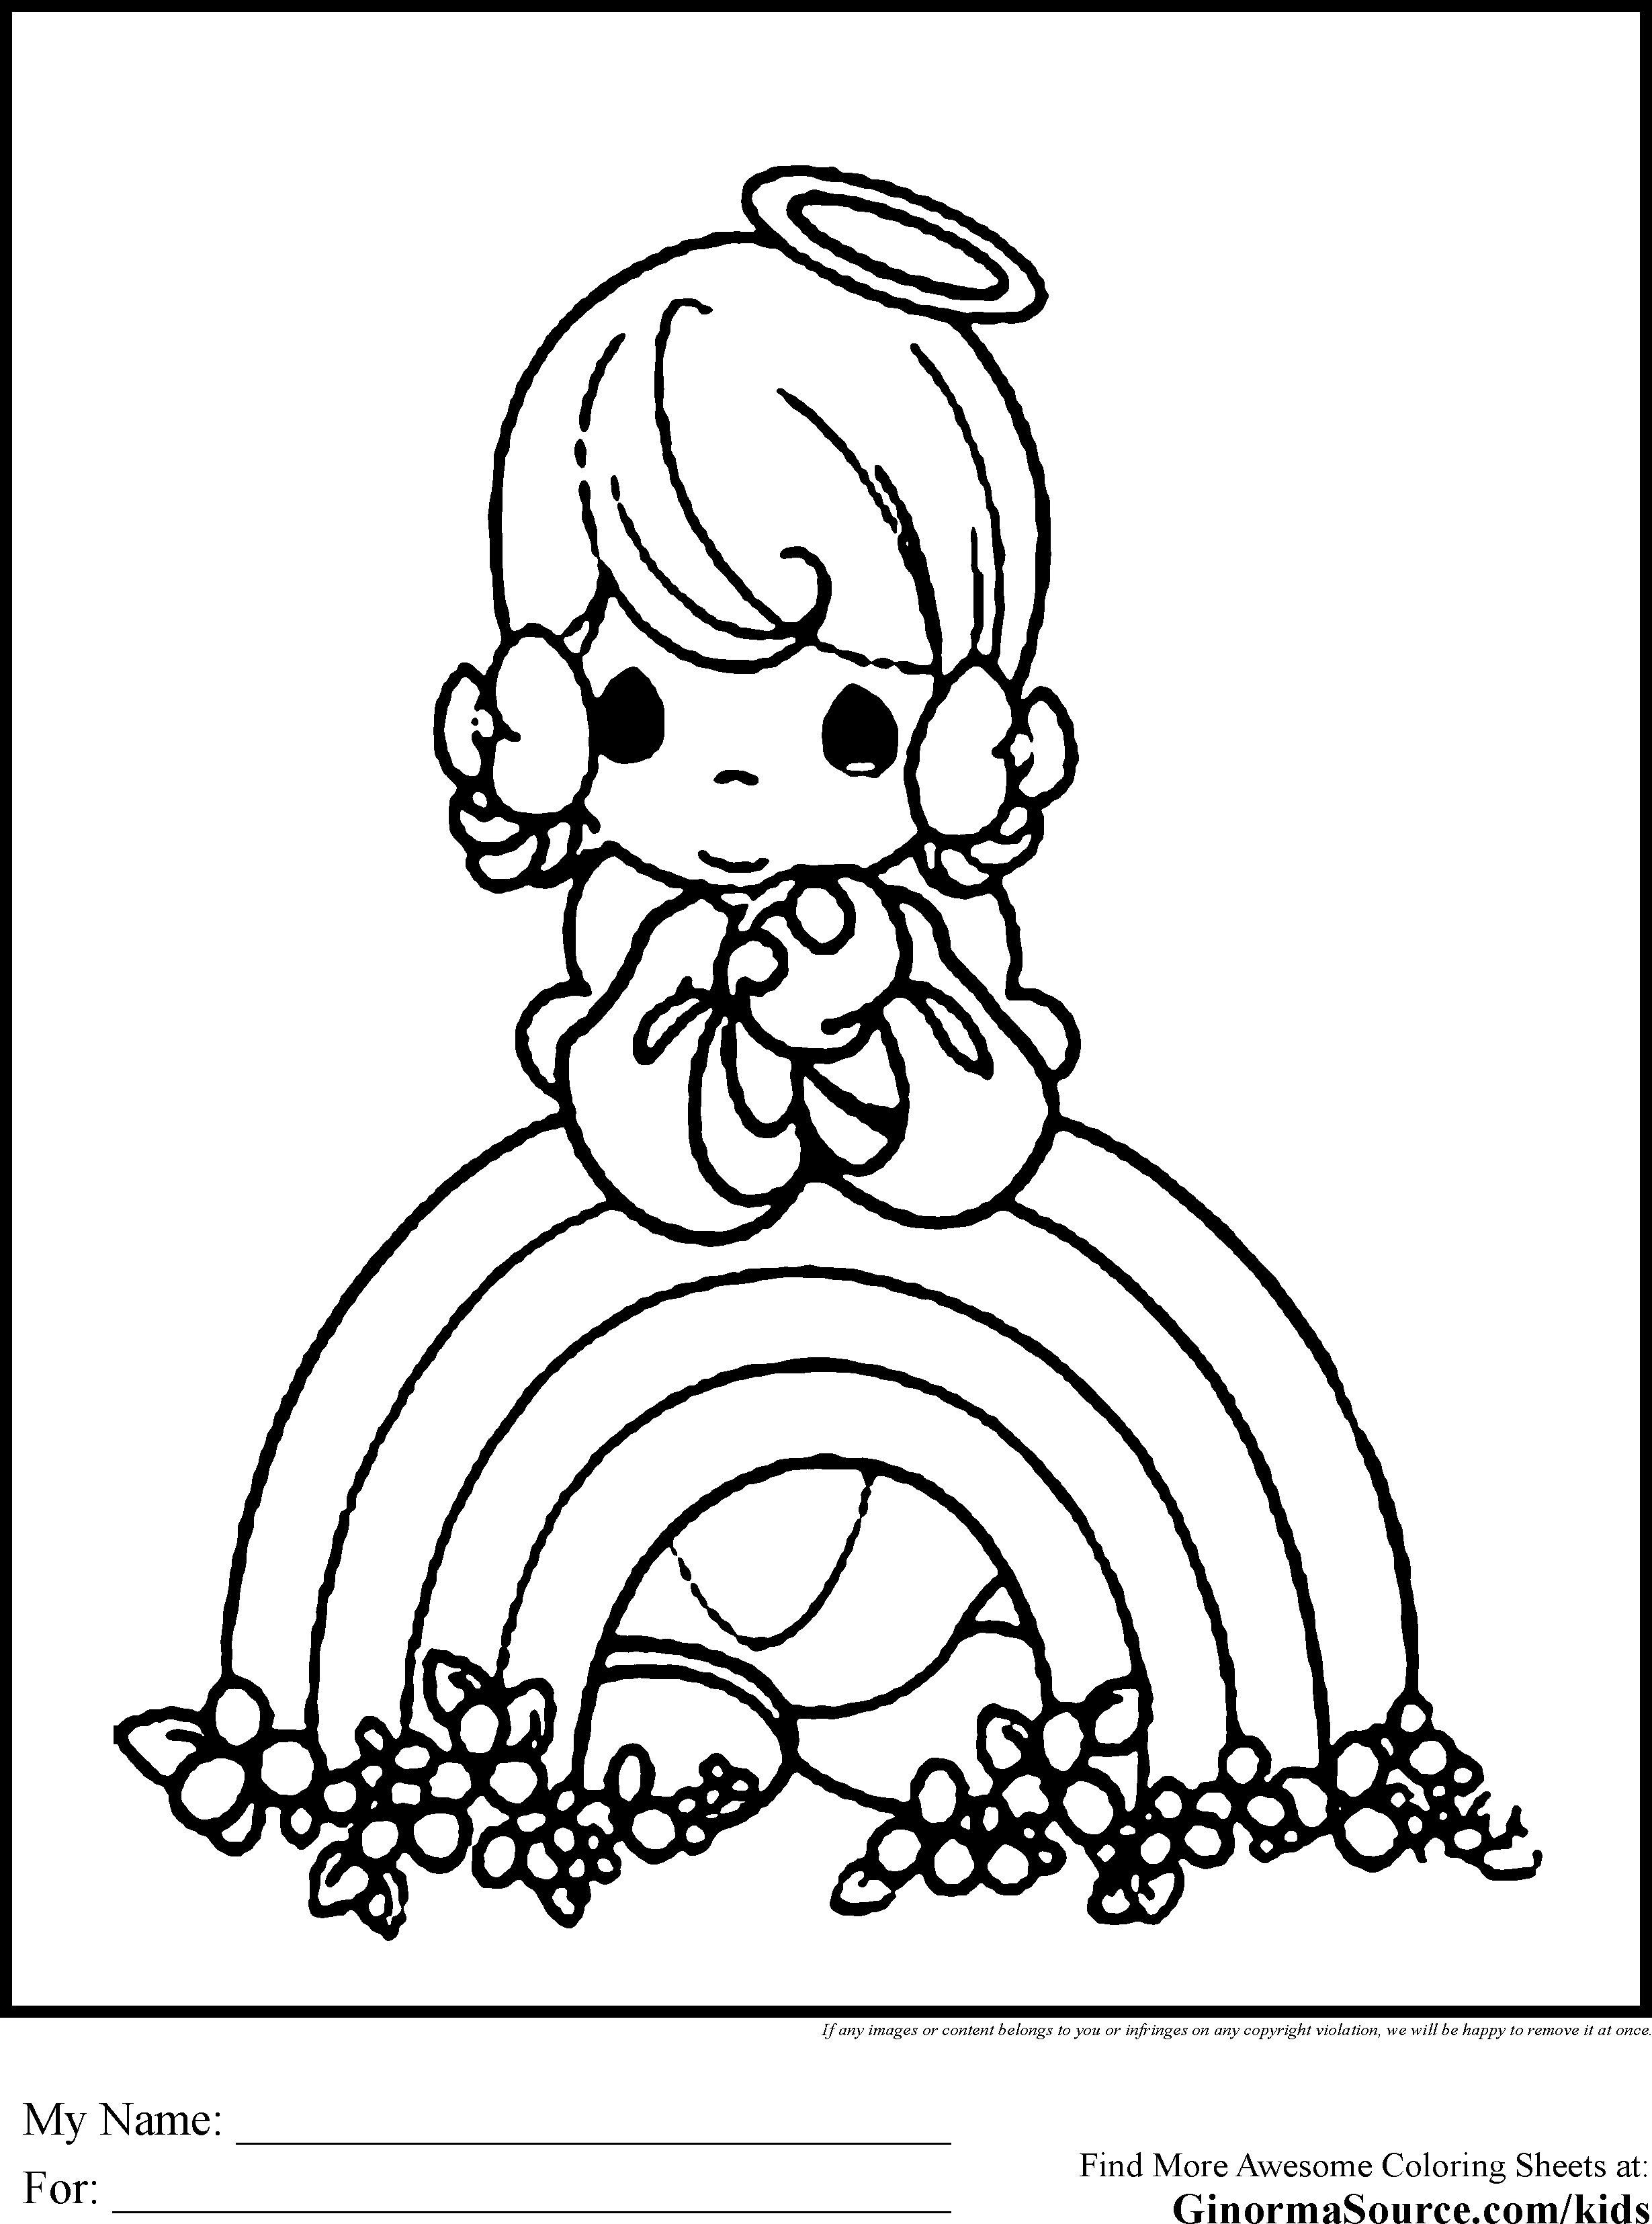 Coloring Sheets You Can Print  Cute Coloring Pages to Print